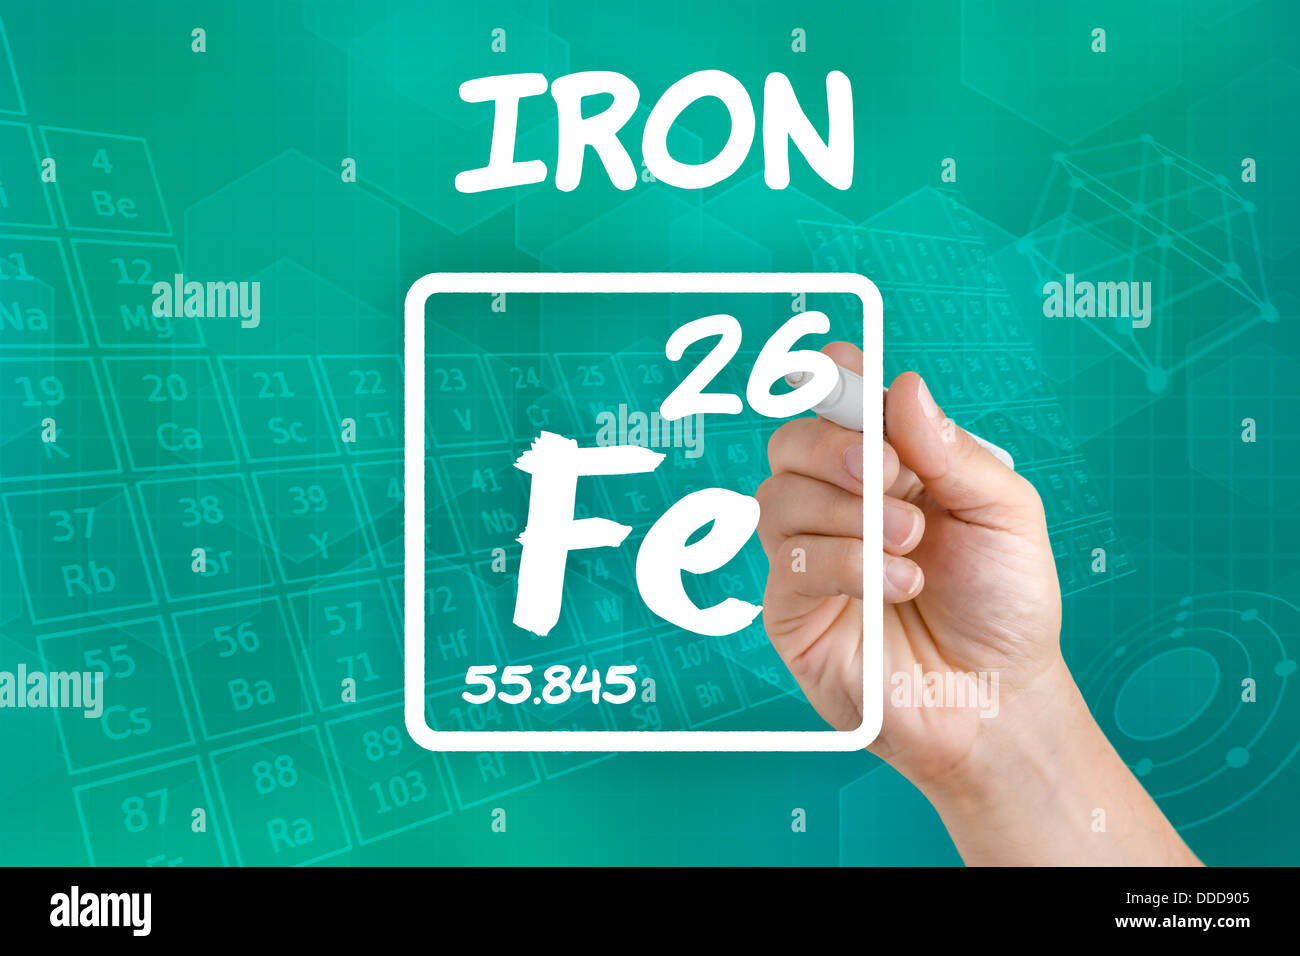 Symbol for the chemical element iron stock photo 59914069 alamy symbol for the chemical element iron buycottarizona Image collections